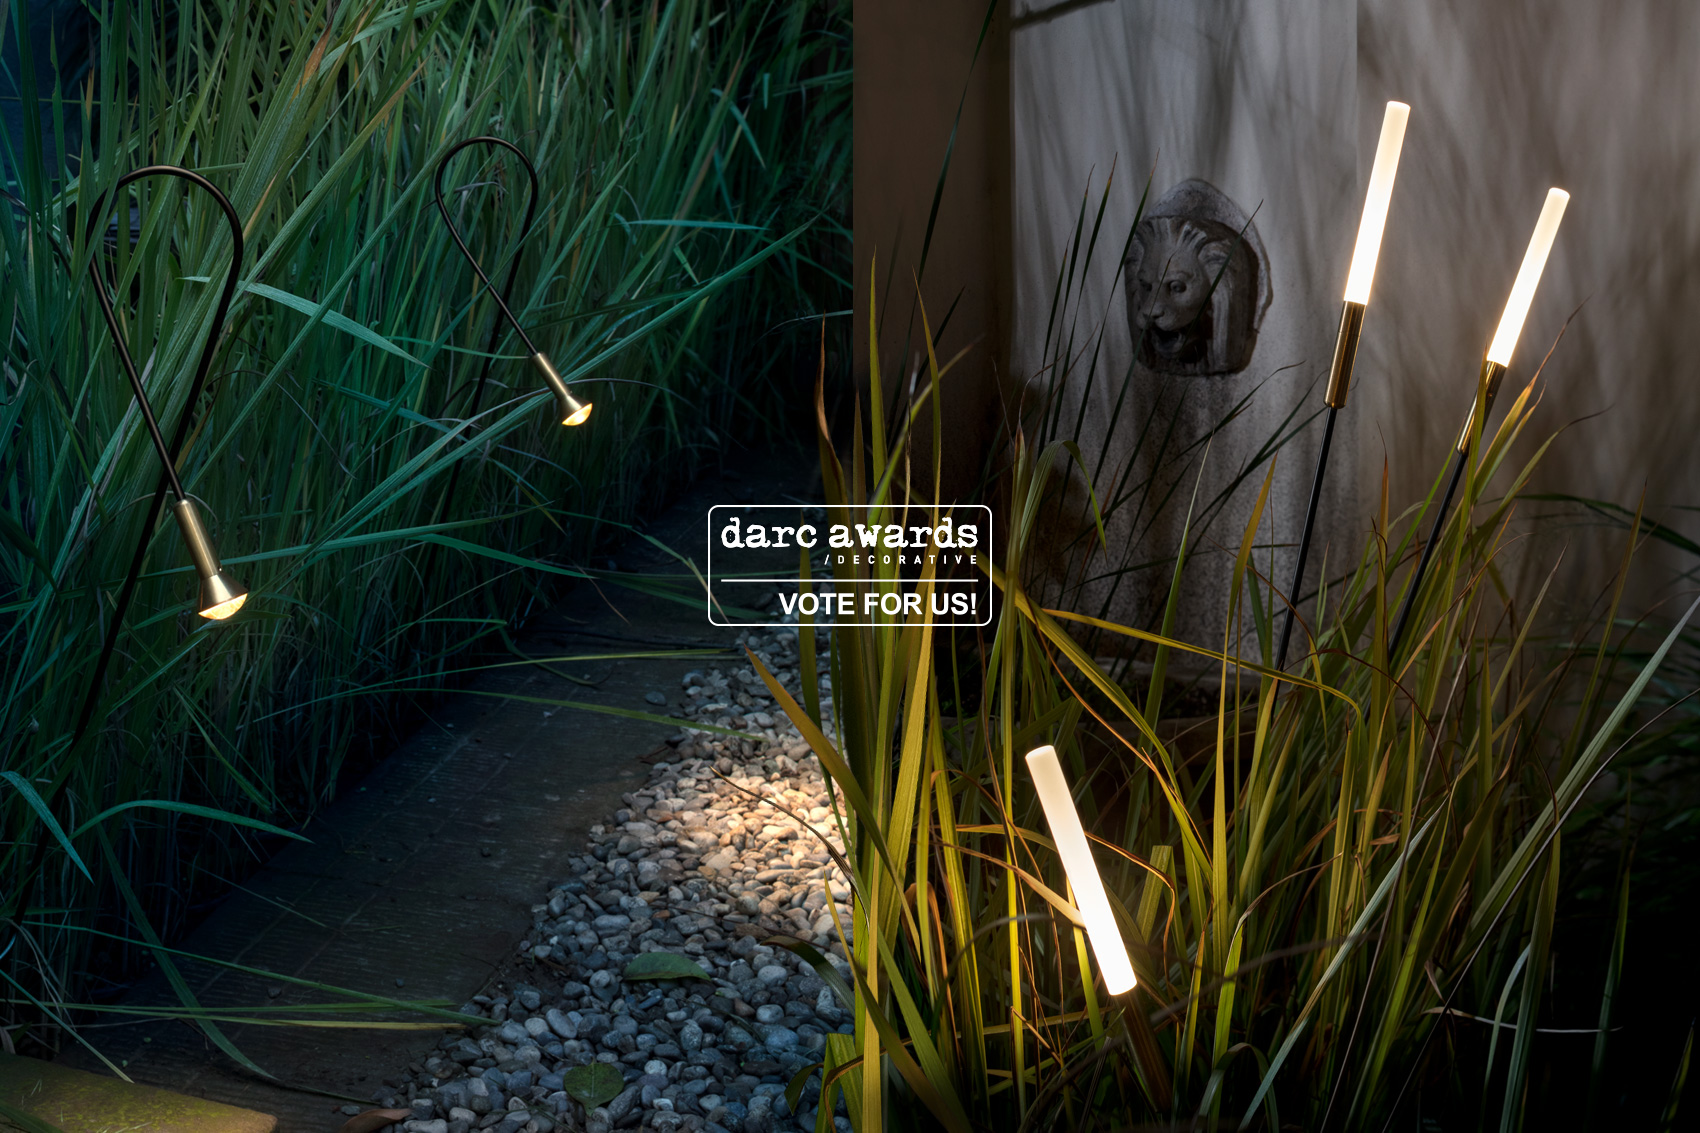 Darc awards/decorative 2018, vote for us!